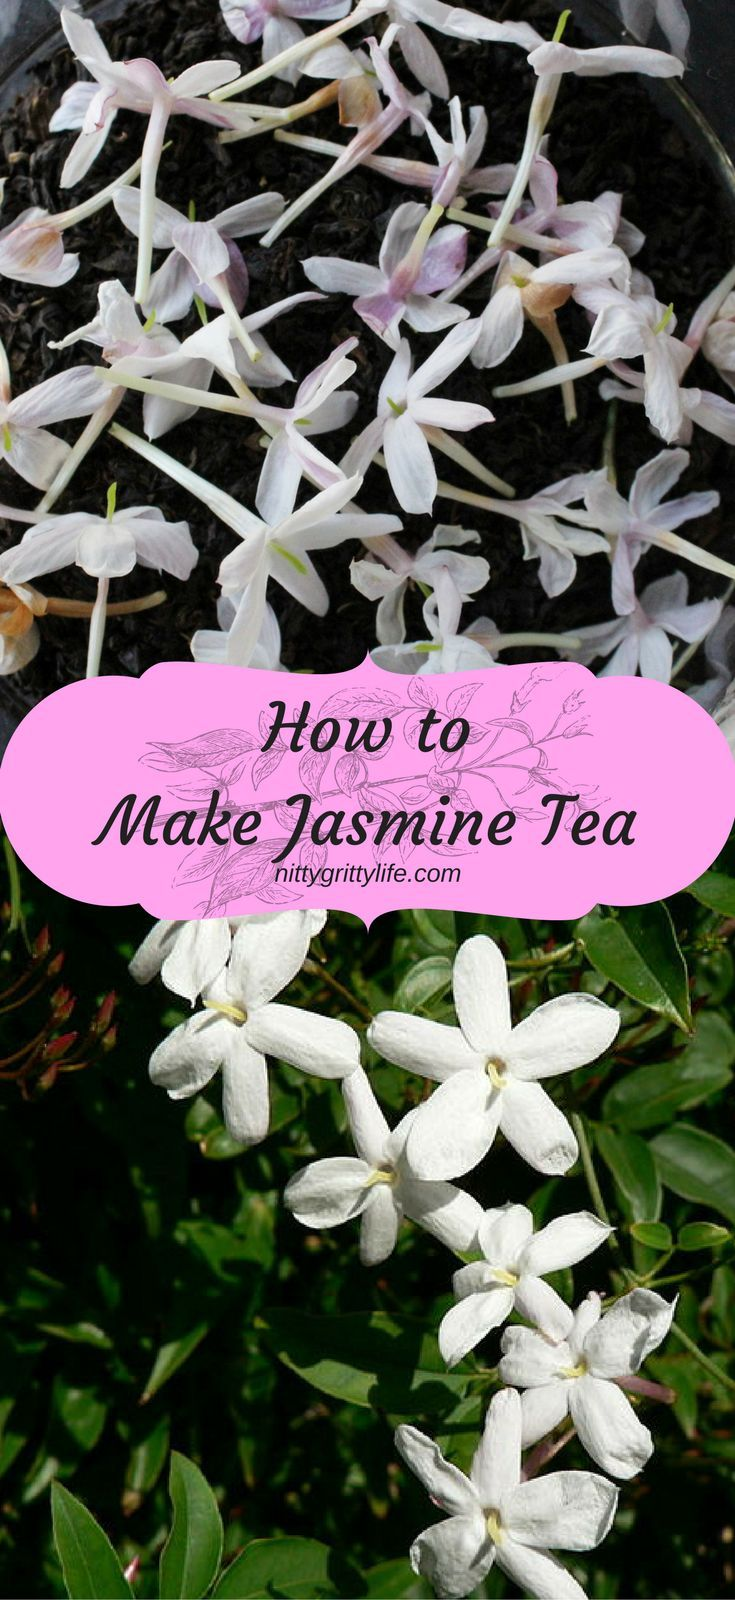 """Jasmine tea is an exotically scented, sensually delicious, but simple tea to make at home. Save money & """"tea"""" like royalty with this DIY preparation."""